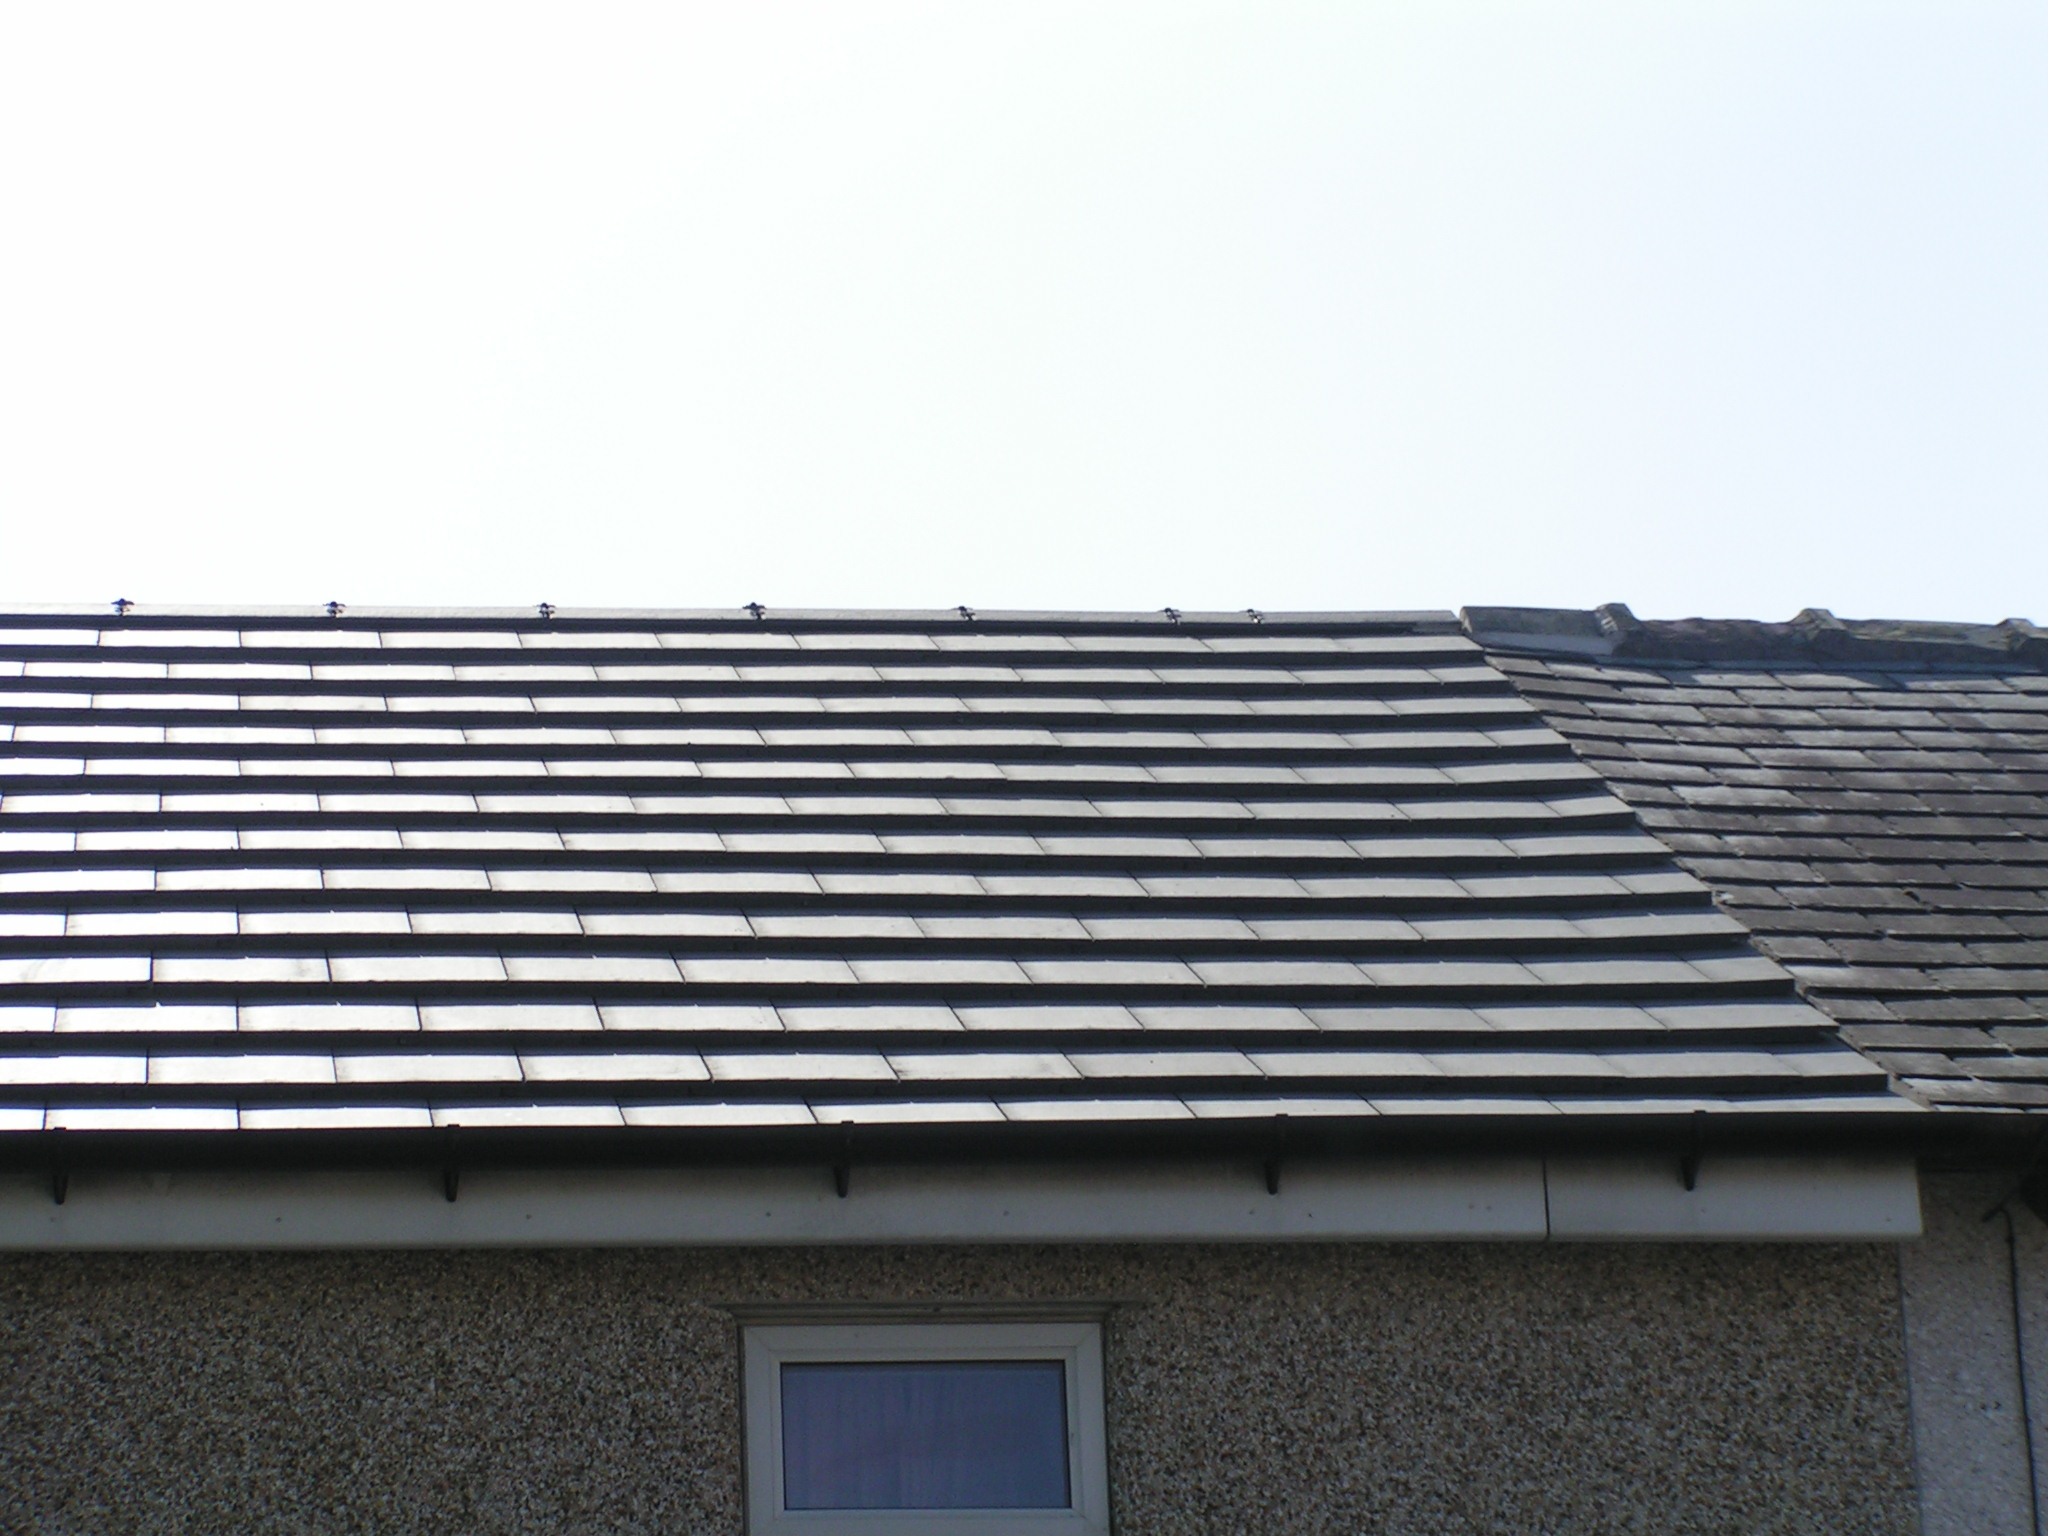 Slating Tiling Roof Repair